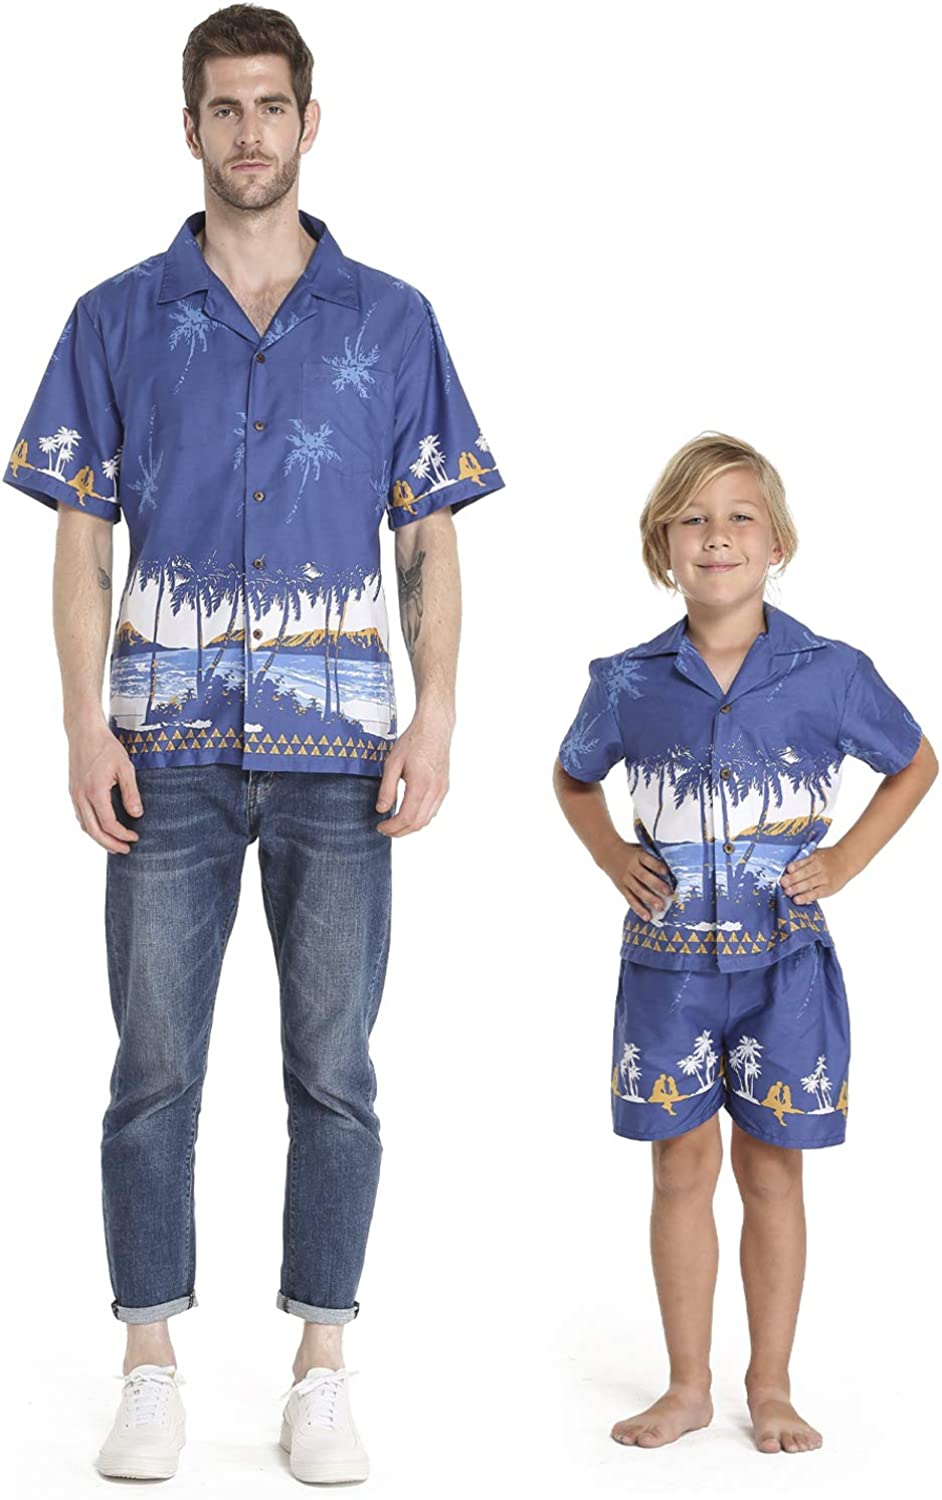 Matching Free shipping on posting reviews Father Son Hawaiian Luau Shirt Sho Boy Outfit Men Sales for sale